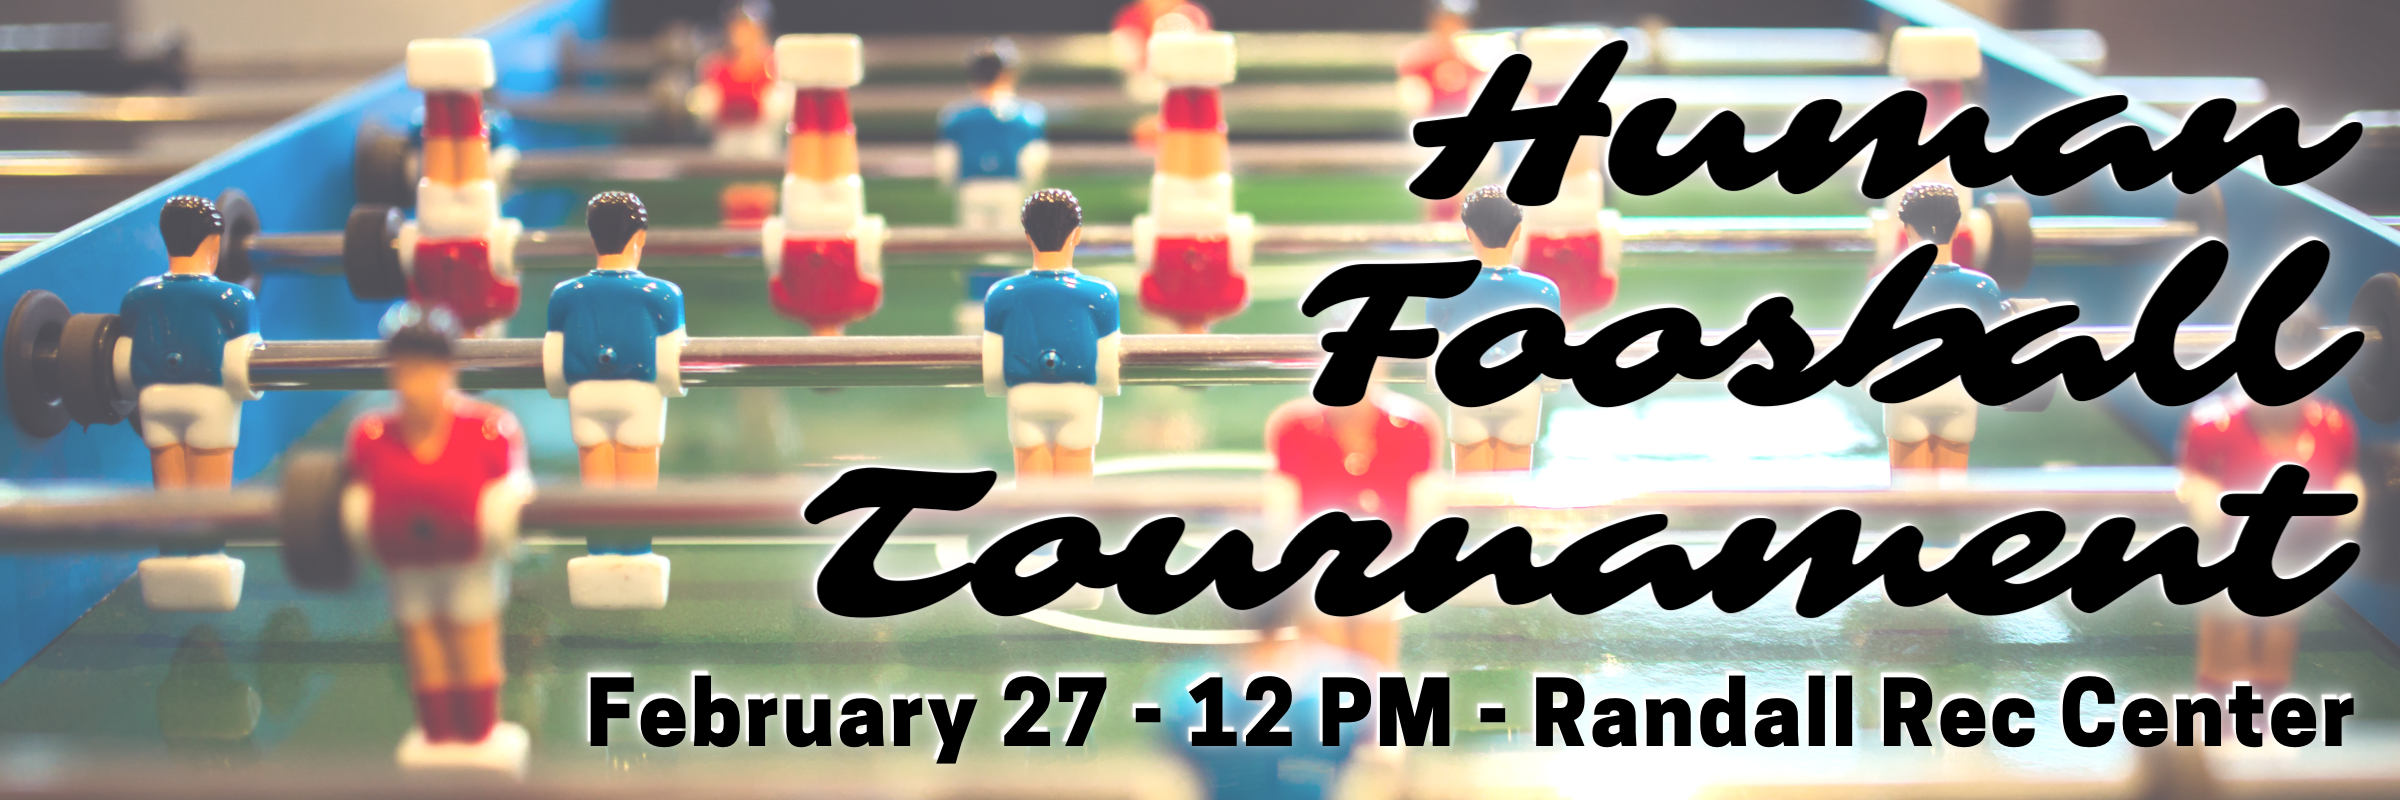 2/27 – Human Foosball Tournament!